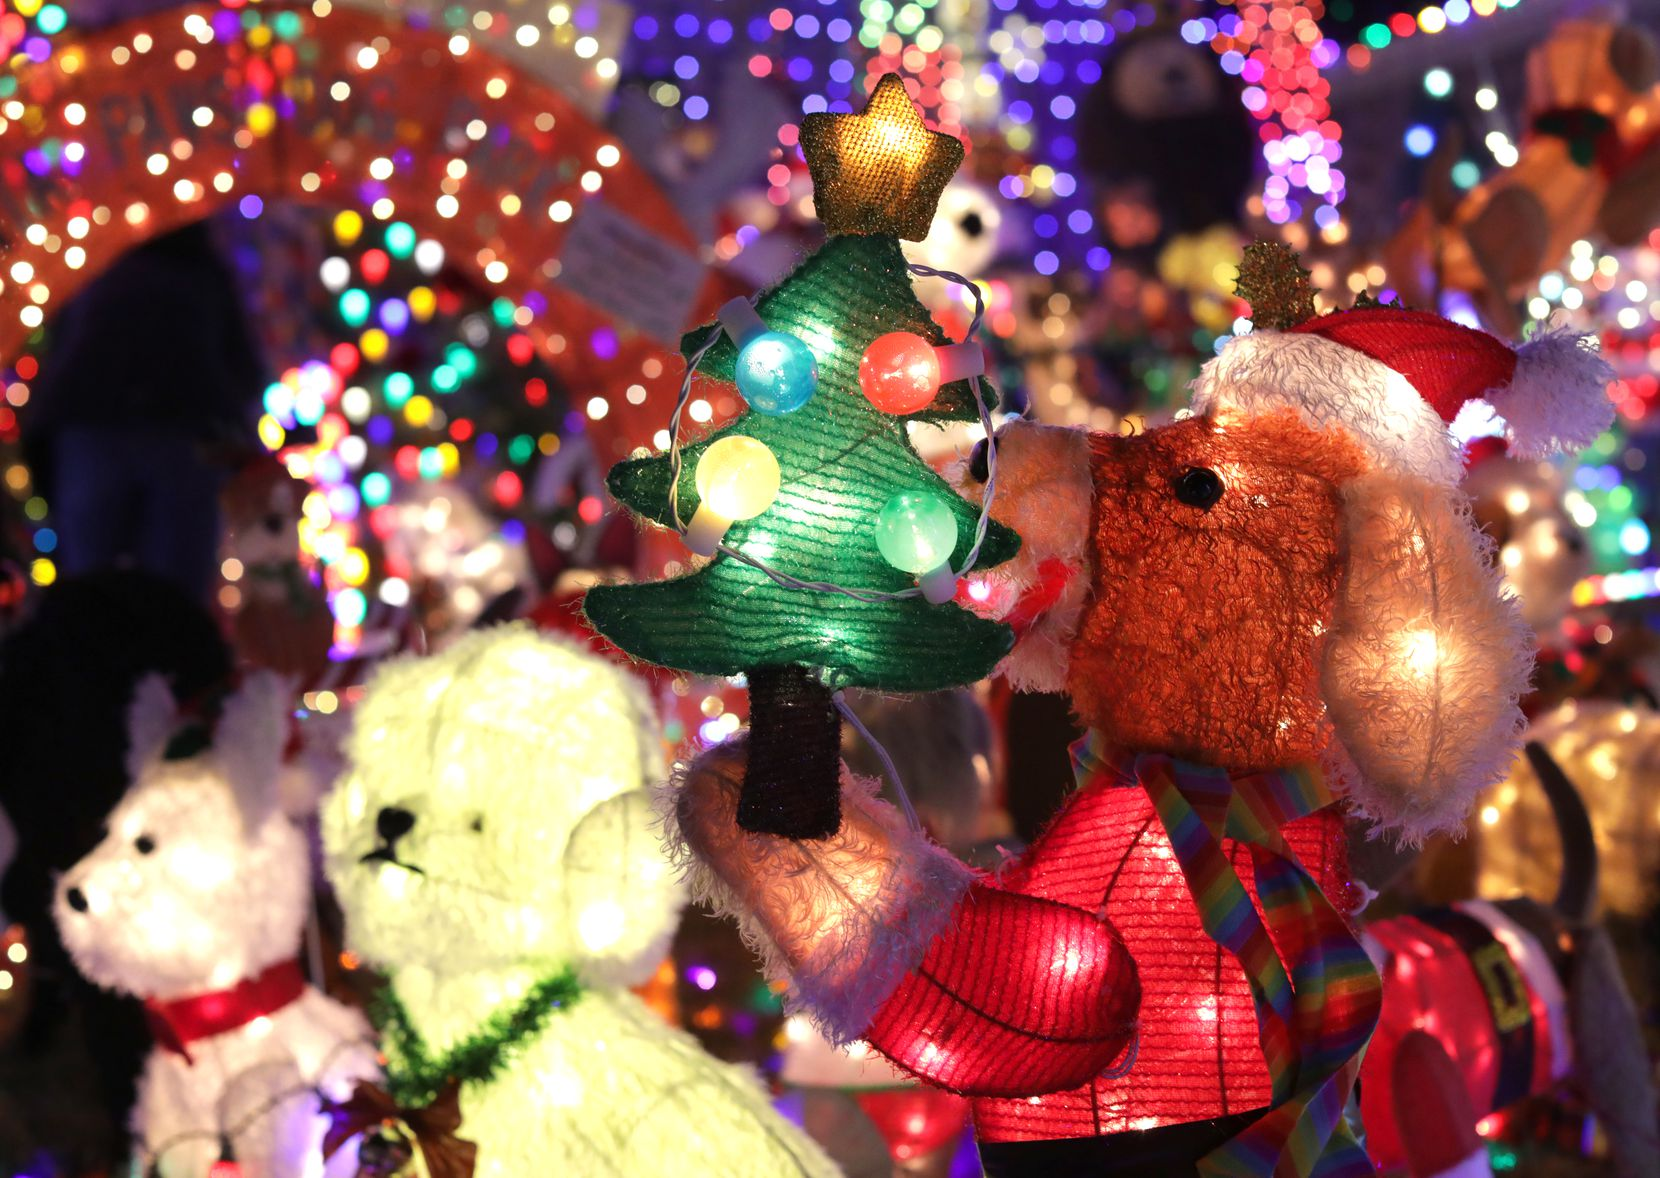 The Burkman family's holiday lights display hosts a menagerie of more than 200 plushy mesh and metal lawn ornaments.